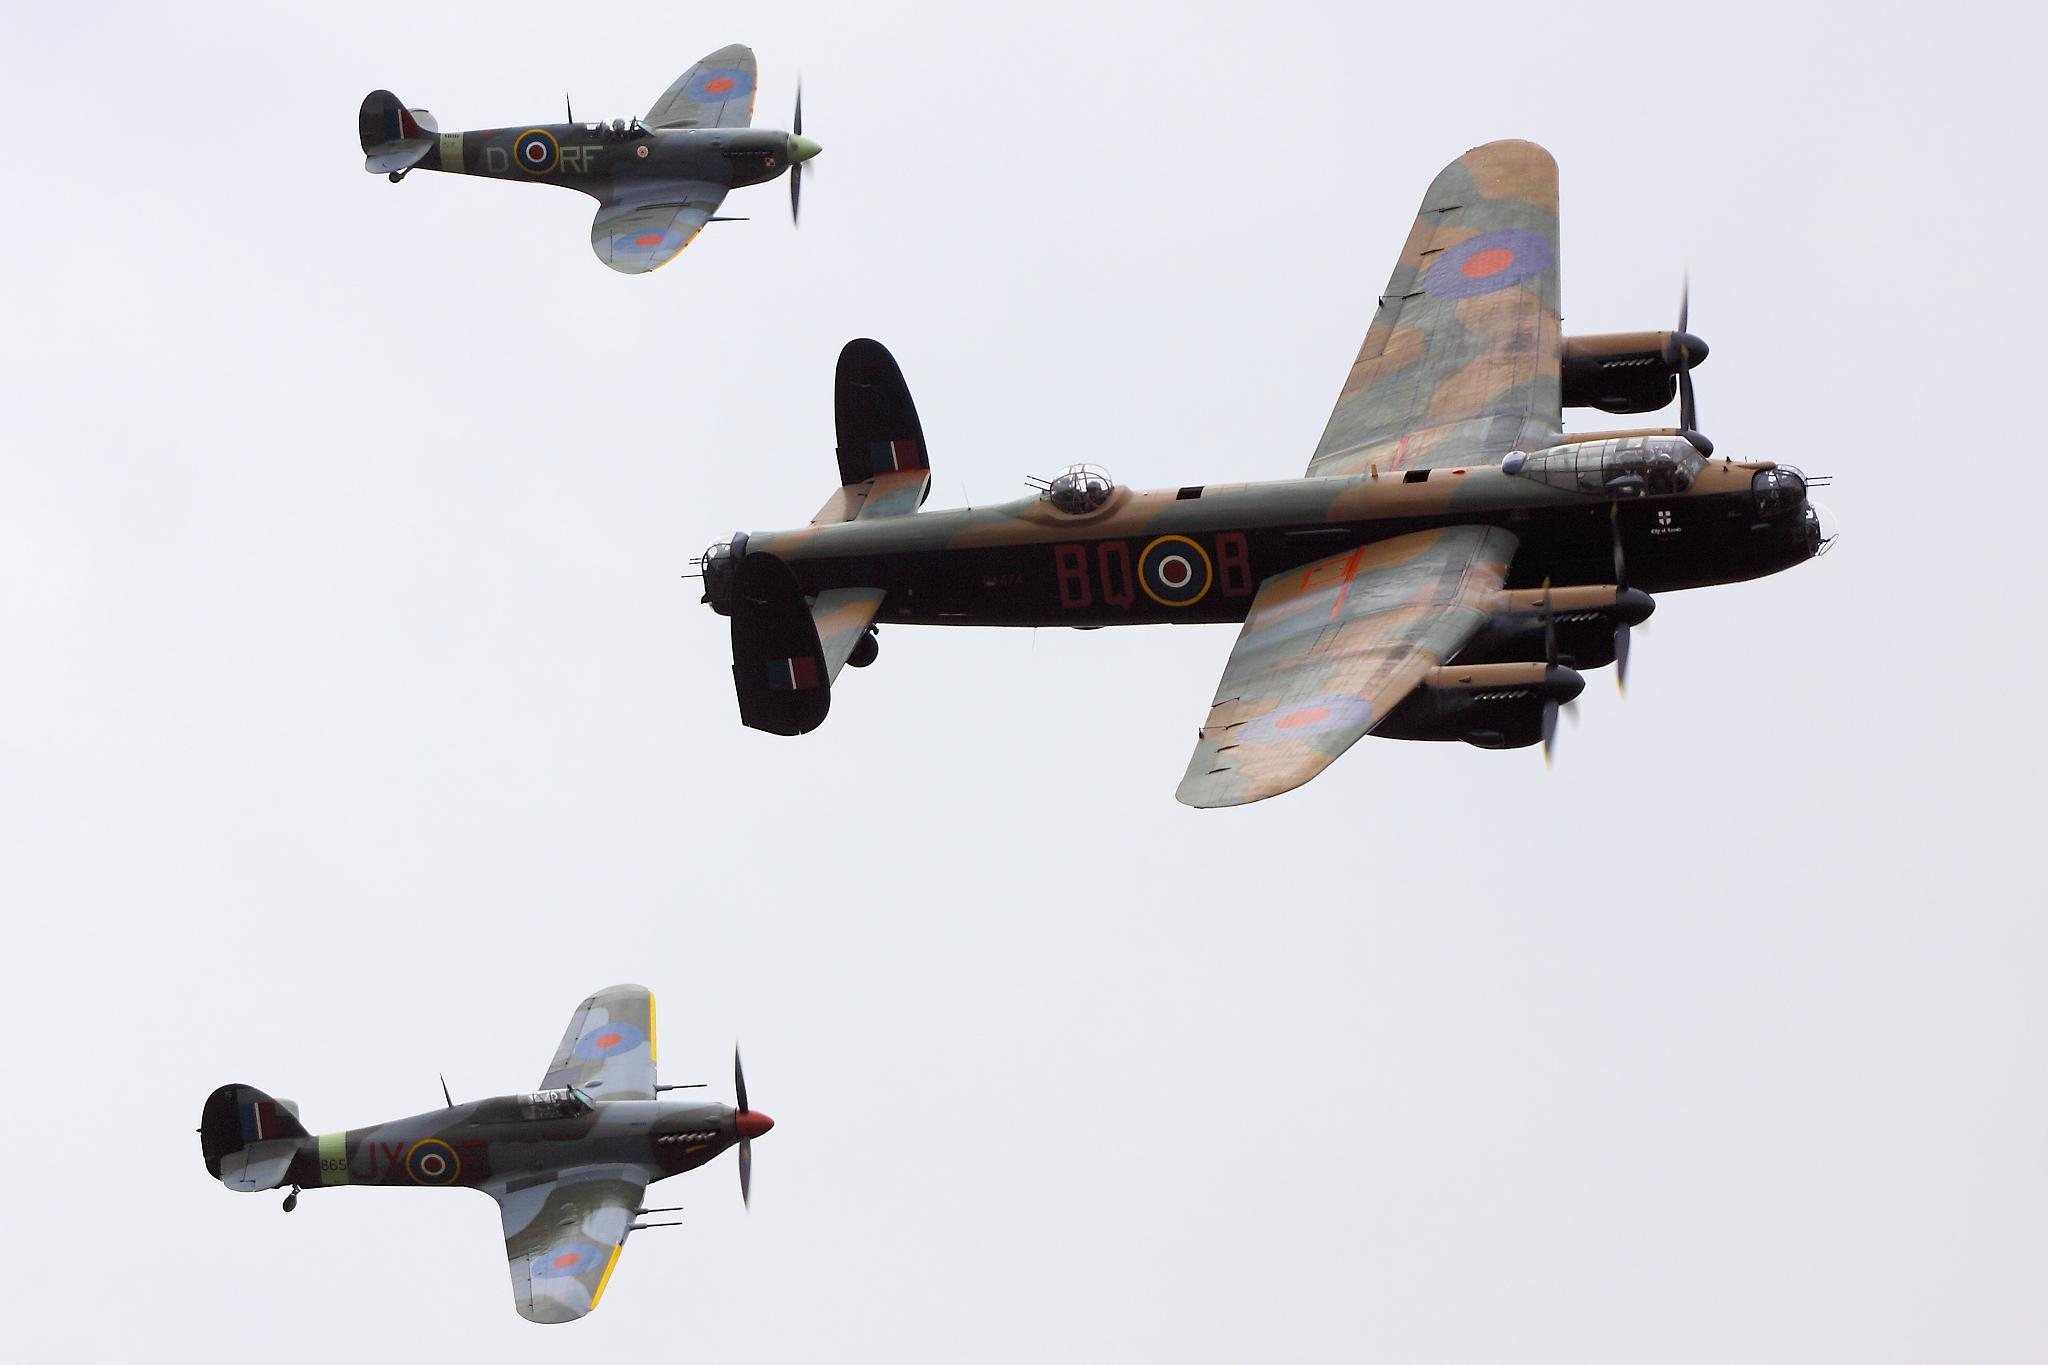 Battle of Britain Memorial Flight, 2010. Source: Wikimedia Commons.